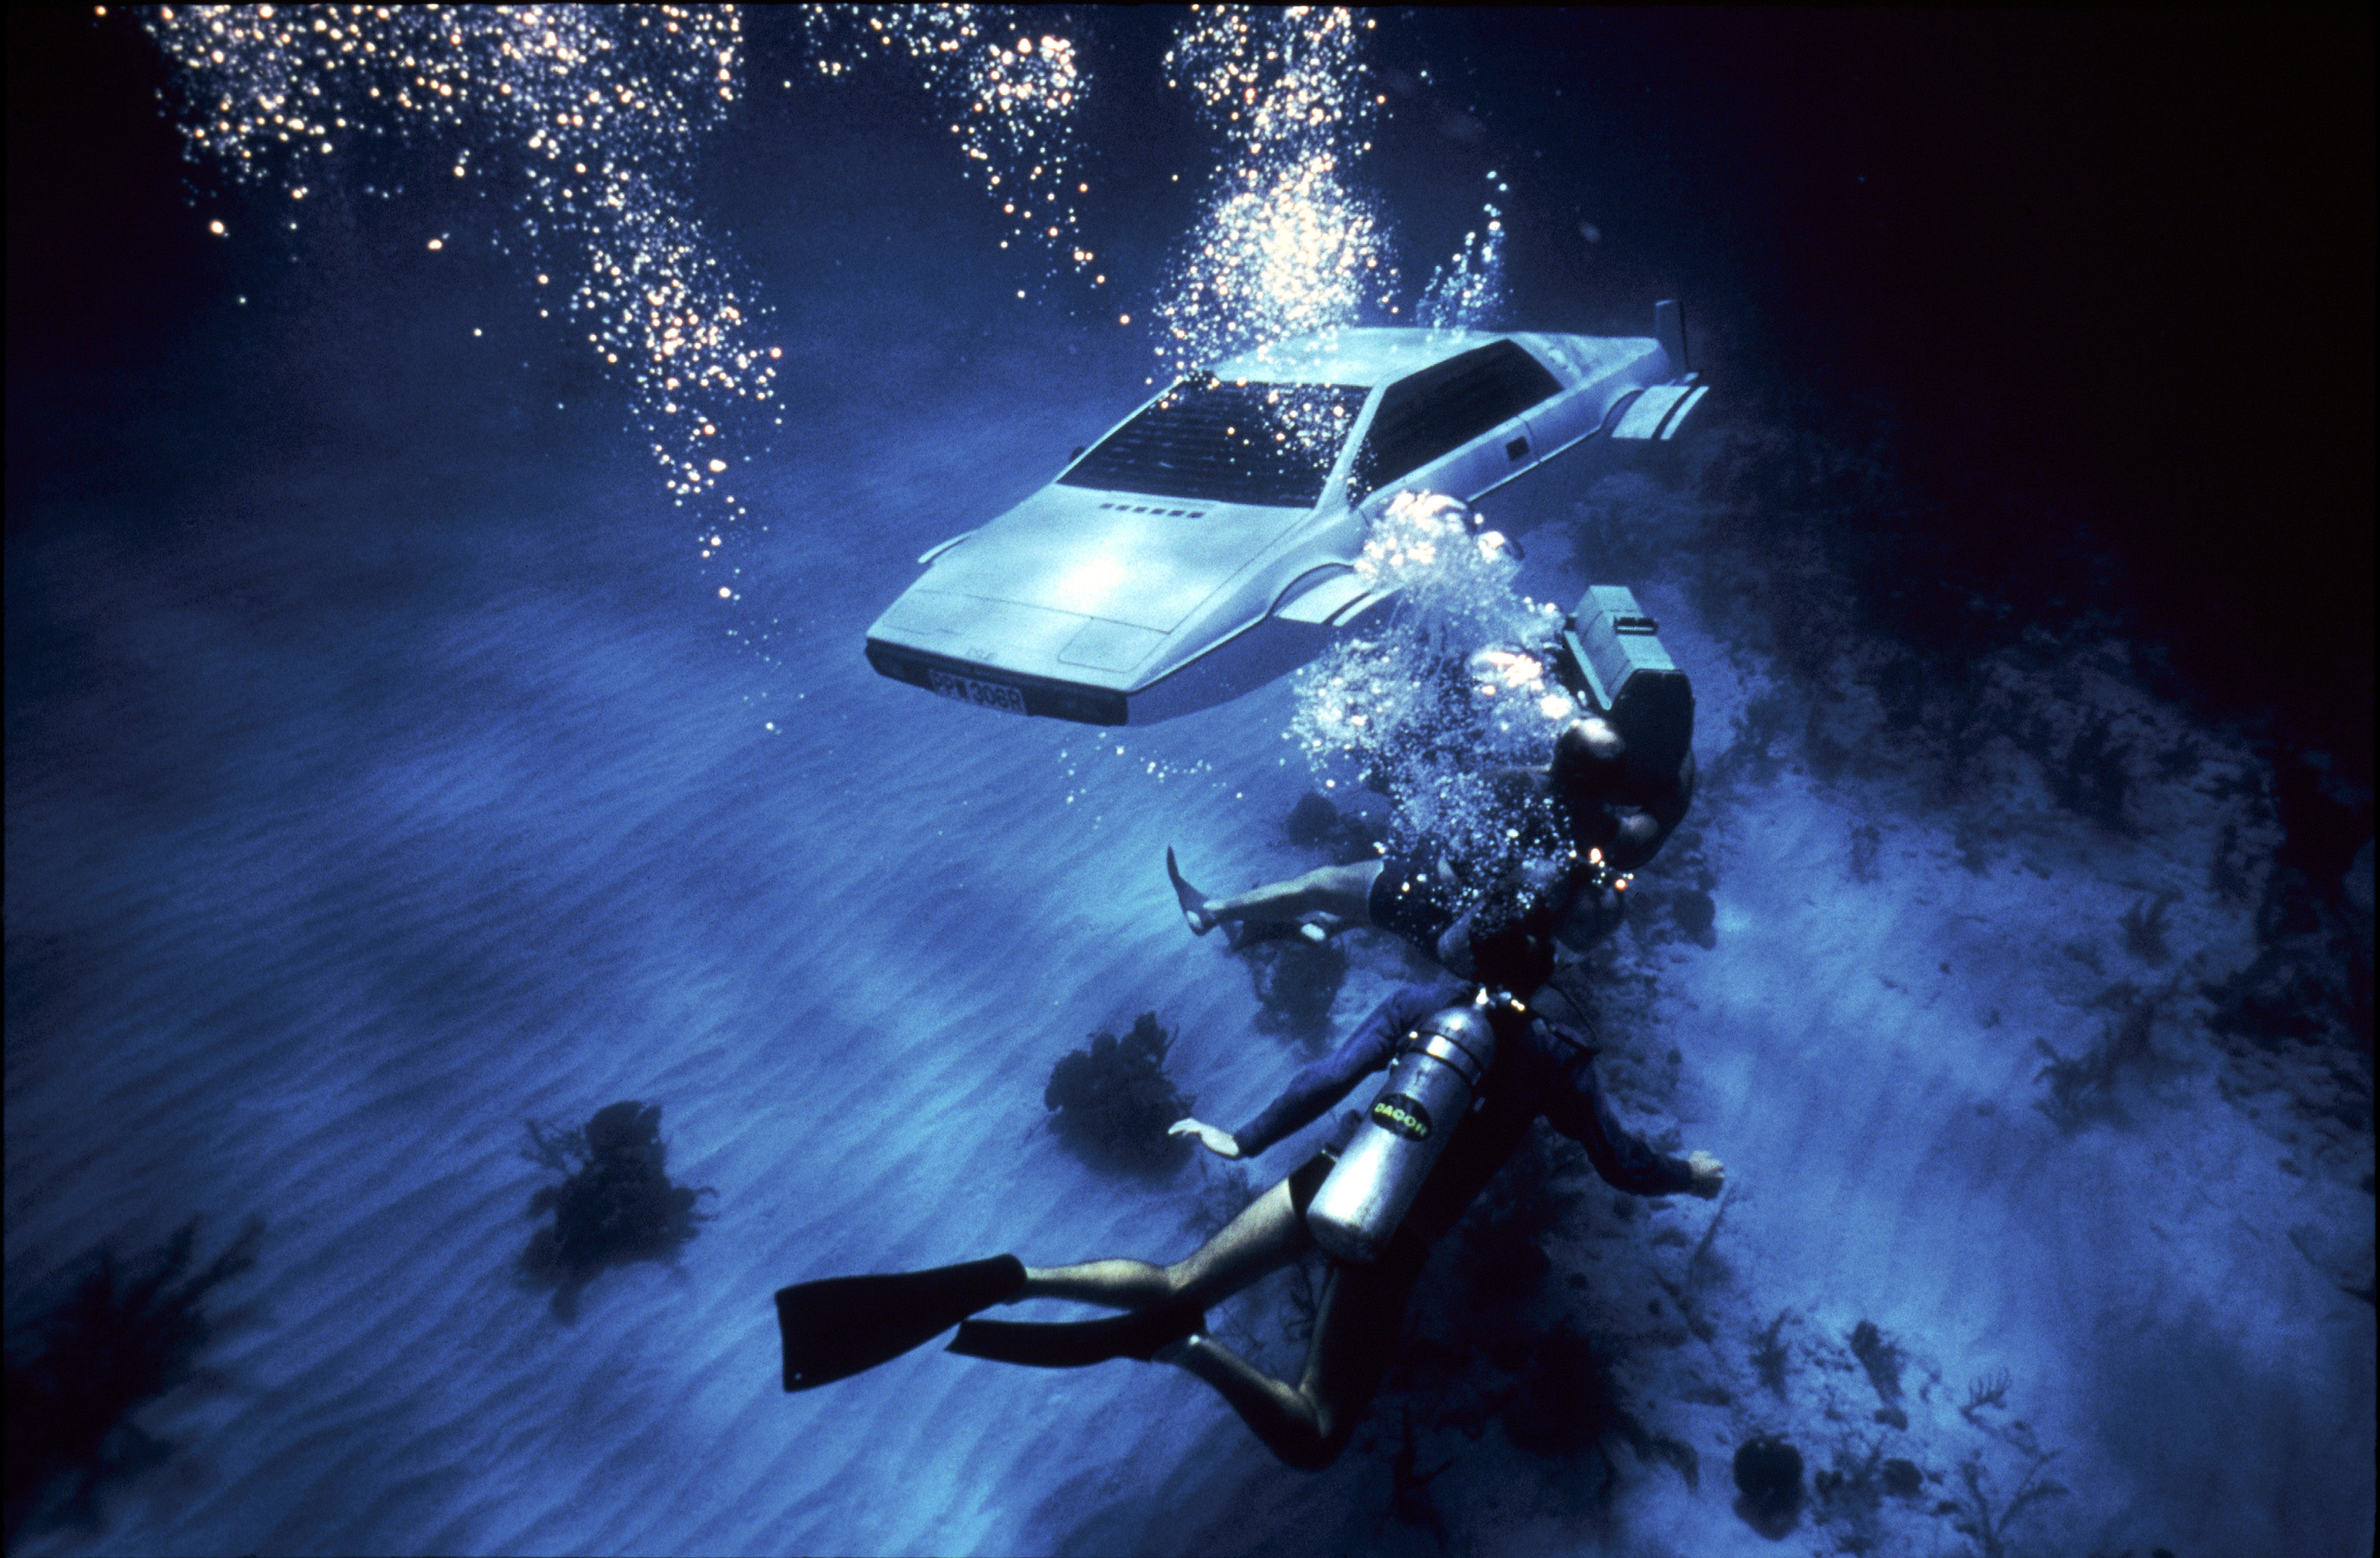 THE SPY WHO LOVED ME, Lotus Esprit, 1977.